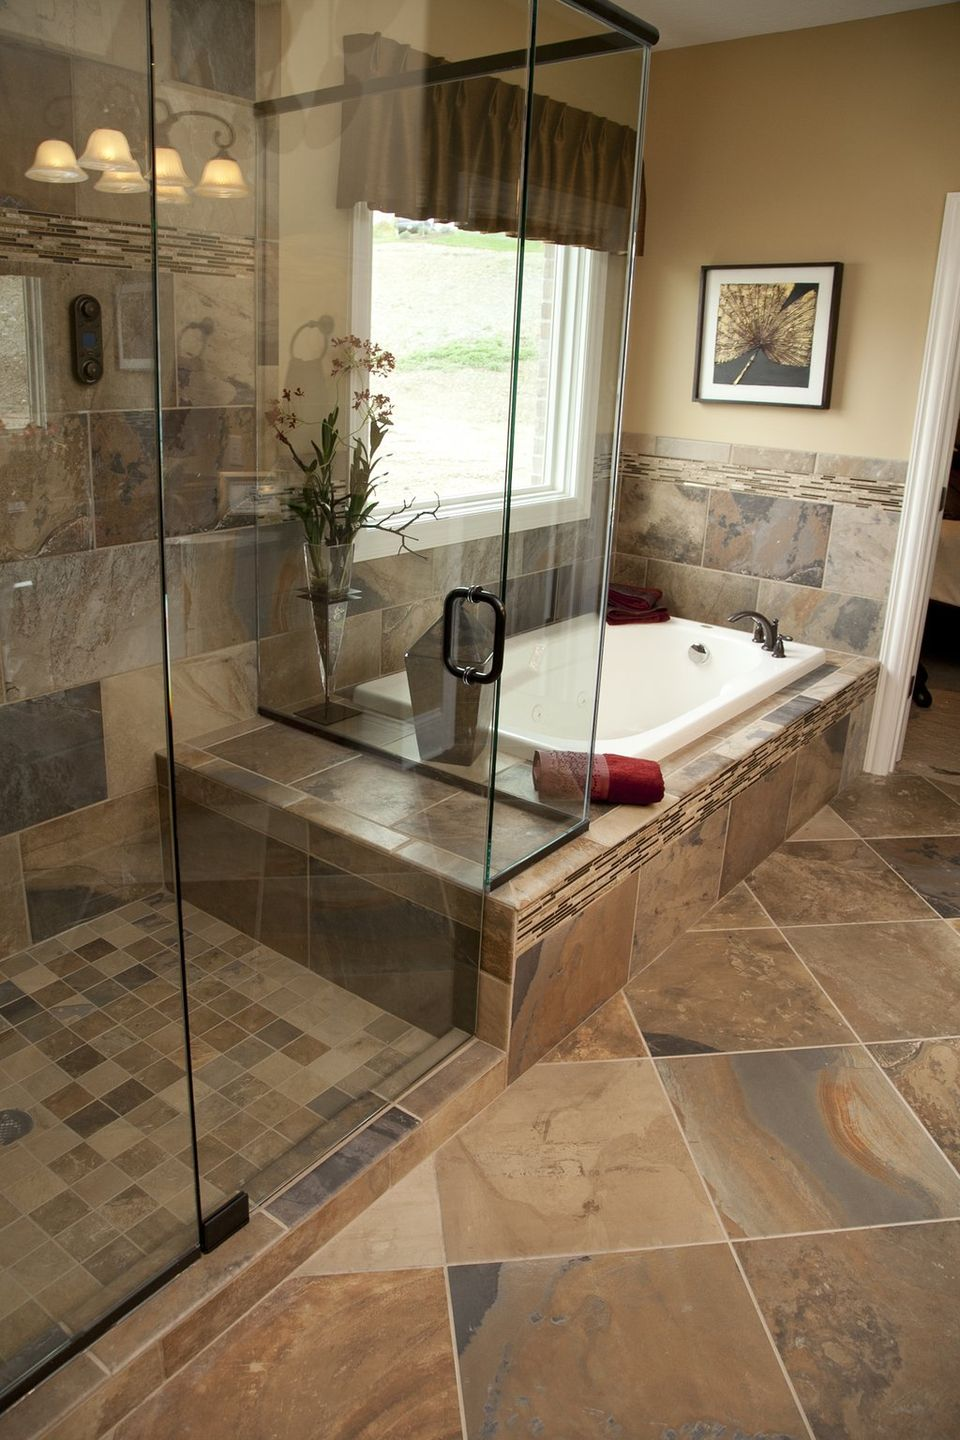 33 stunning pictures and ideas of natural stone bathroom for Bathroom tile designs ideas